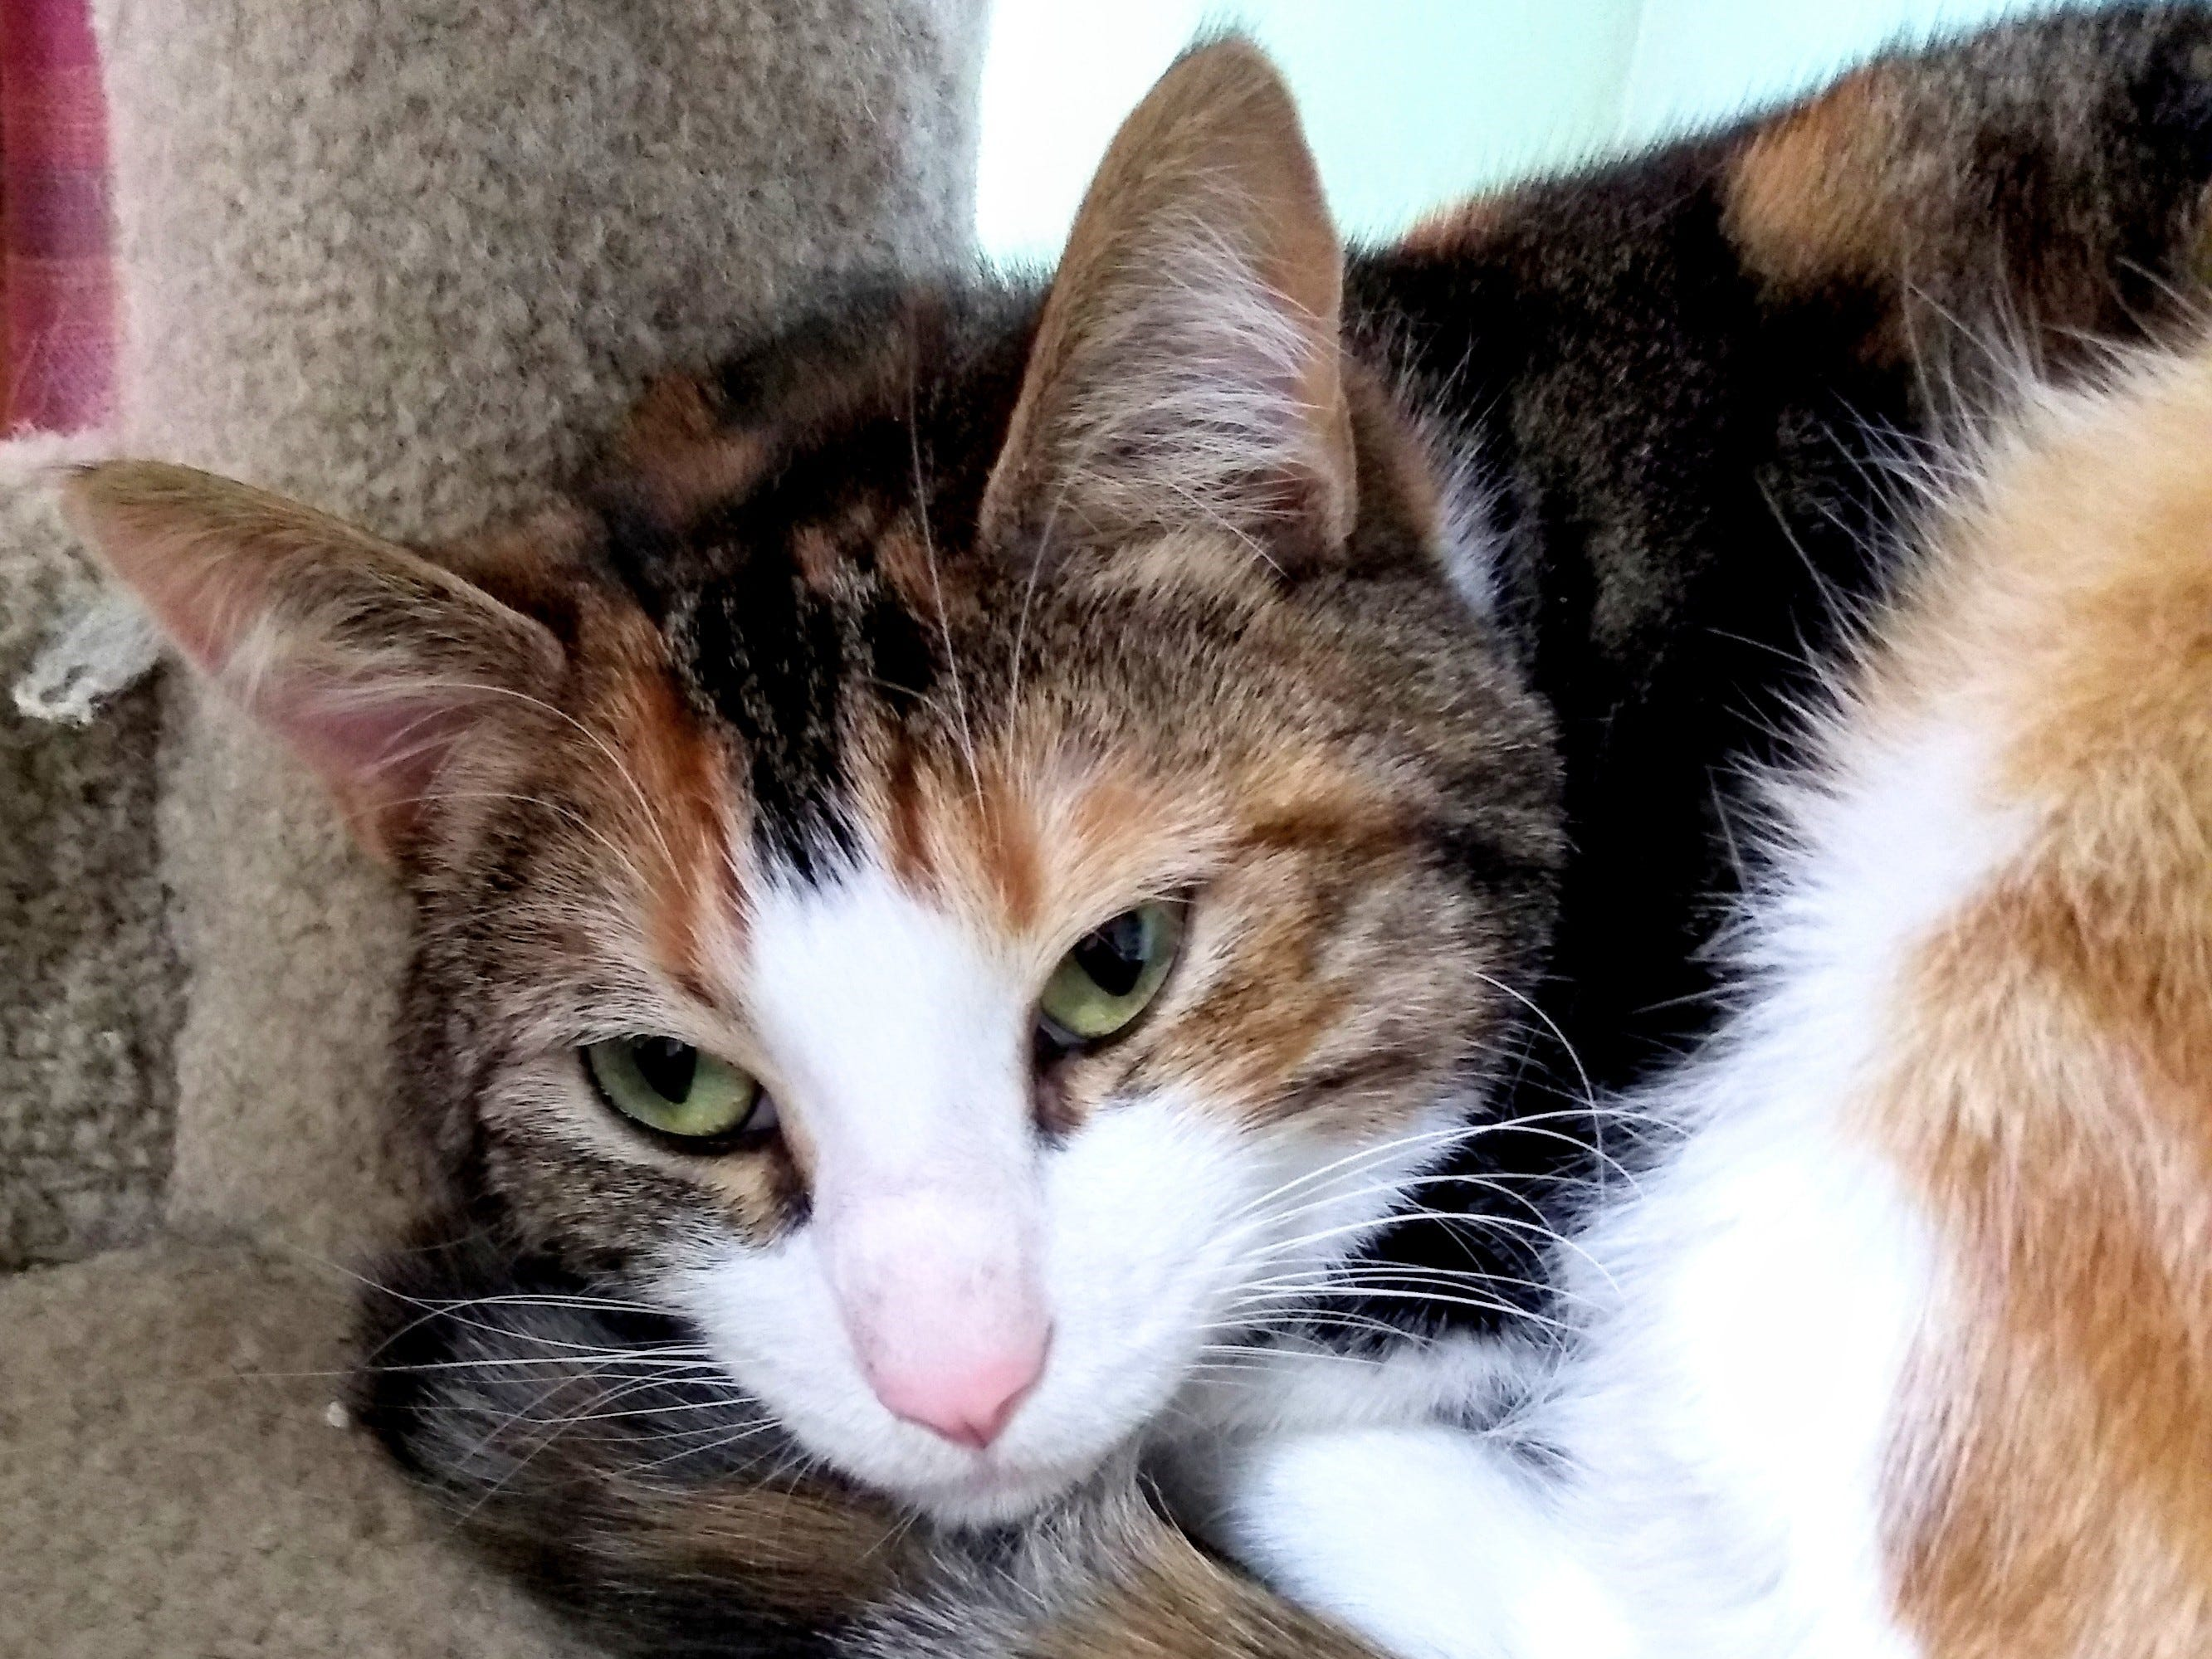 Thelma is 1 year old and is bonded with Gypsy. The pair must be adopted together. Thelma loves to be held – she is a snuggly girl who absolutely loves attention. She is also very friendly and loves people. For more information, visit www.sfof.org or call 503-362-5611.